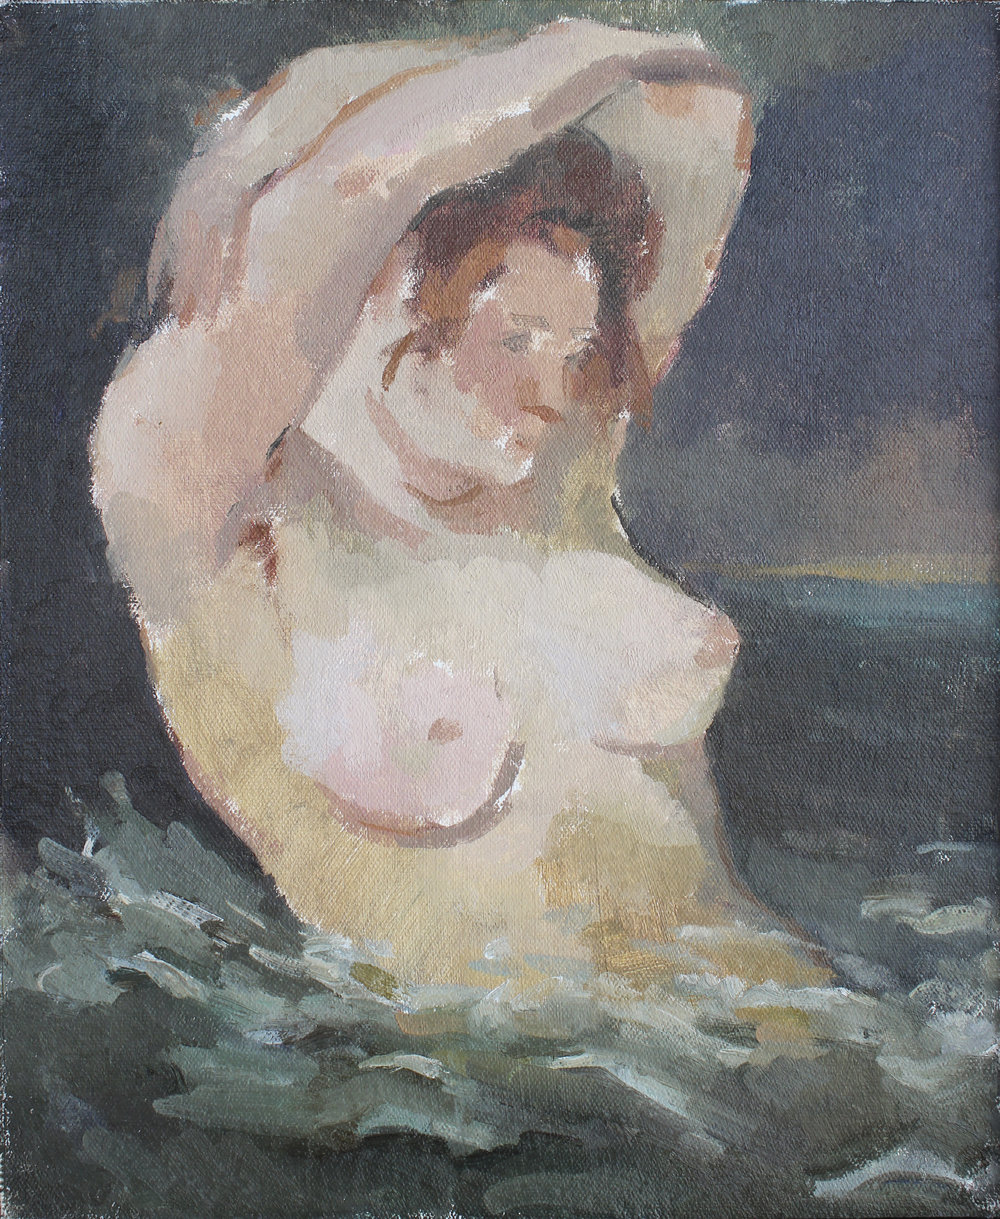 """the woman in the waves  oil on mounted canvas 10x13.5"""" 2017  private collection Nashville, TN"""